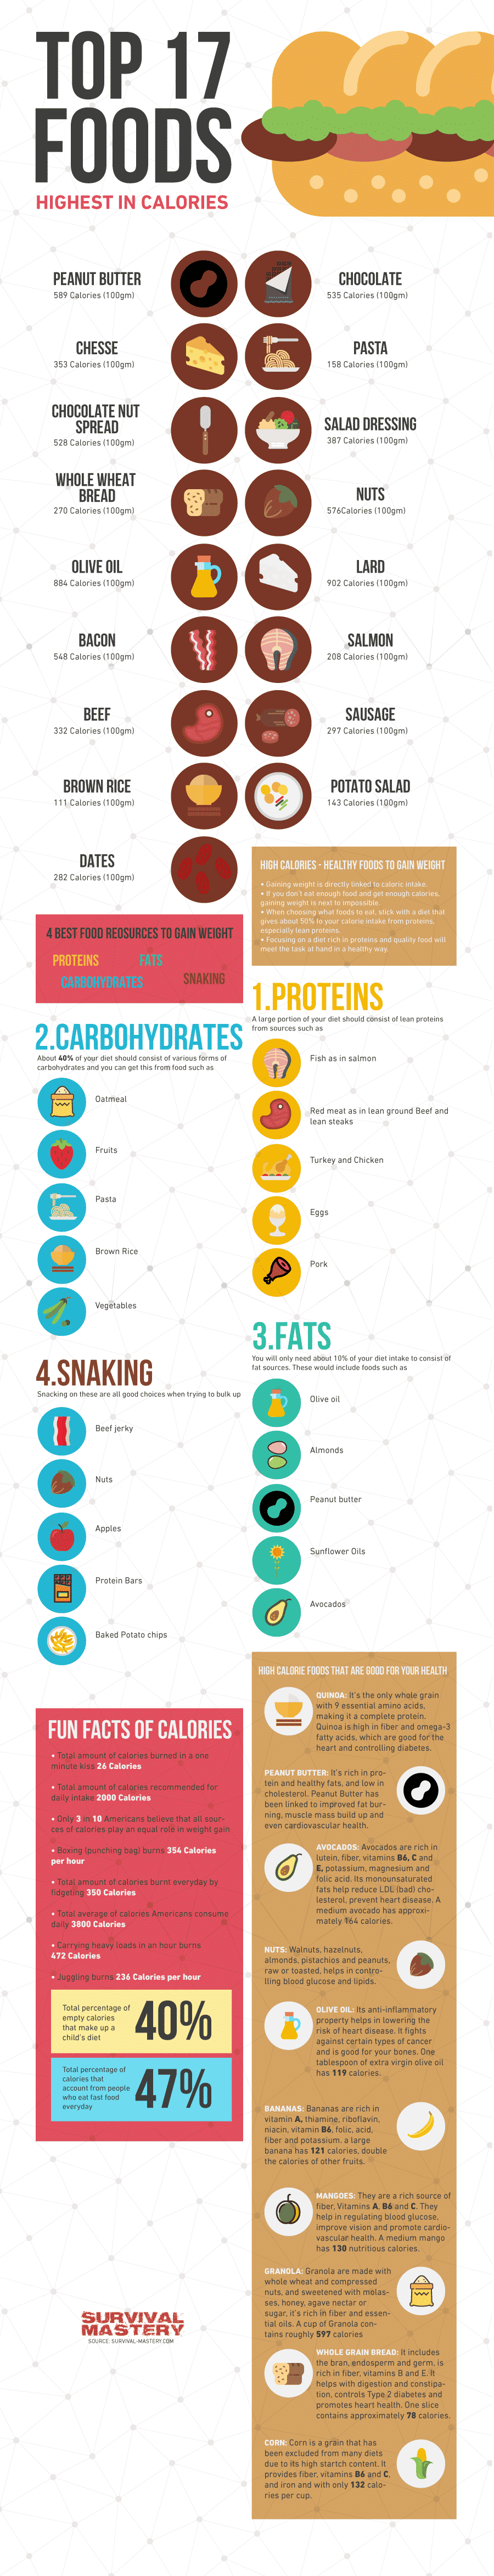 High Calorie Healthy Foods infographic